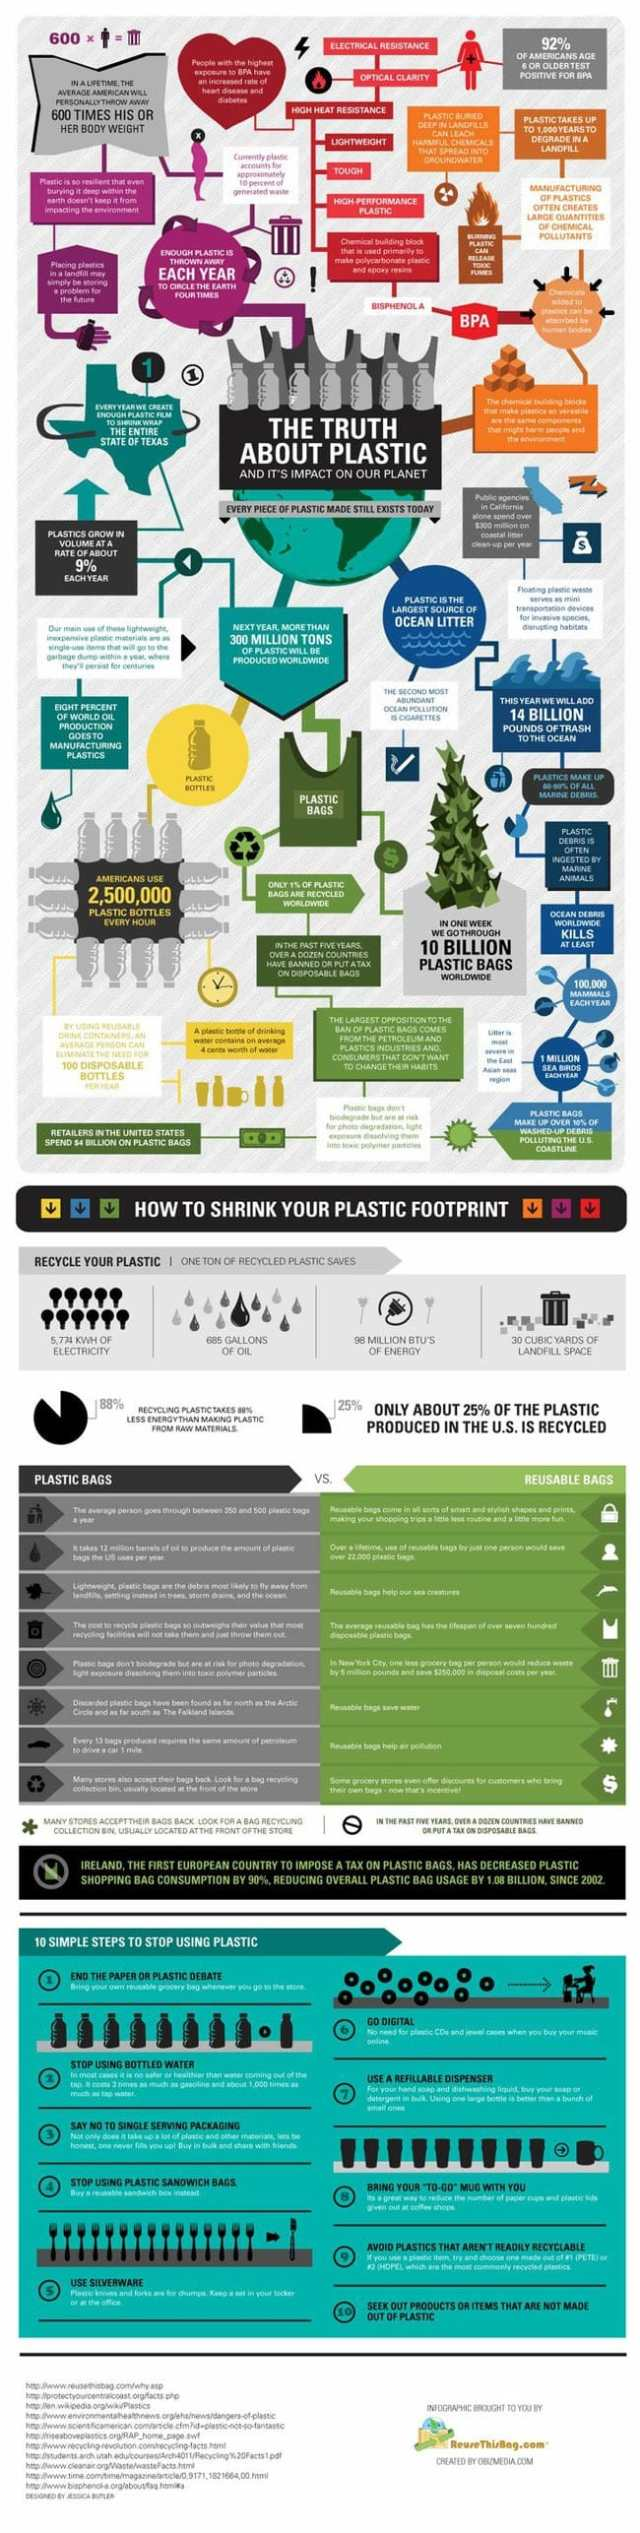 Plastic Truths Infographic